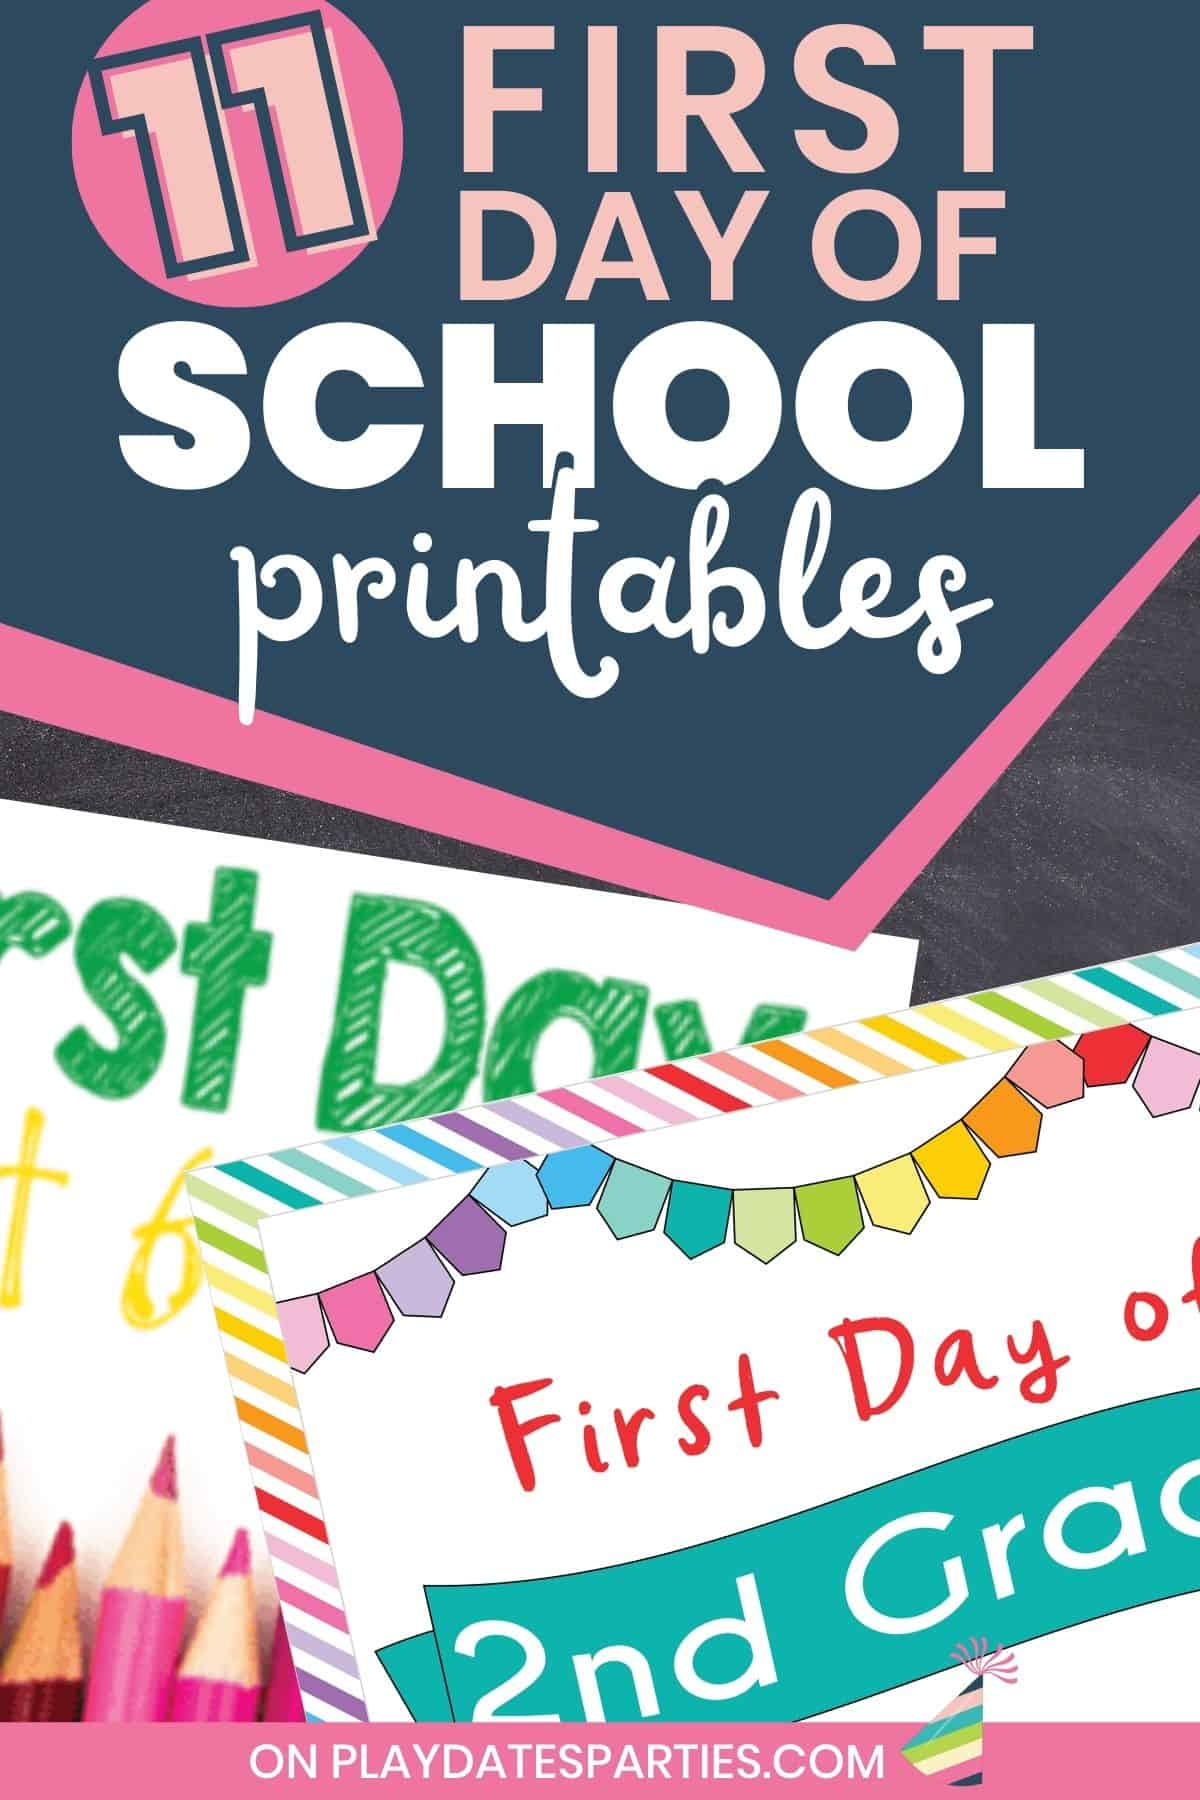 Collage of printable signs with the text overlay 11 first day of school printables